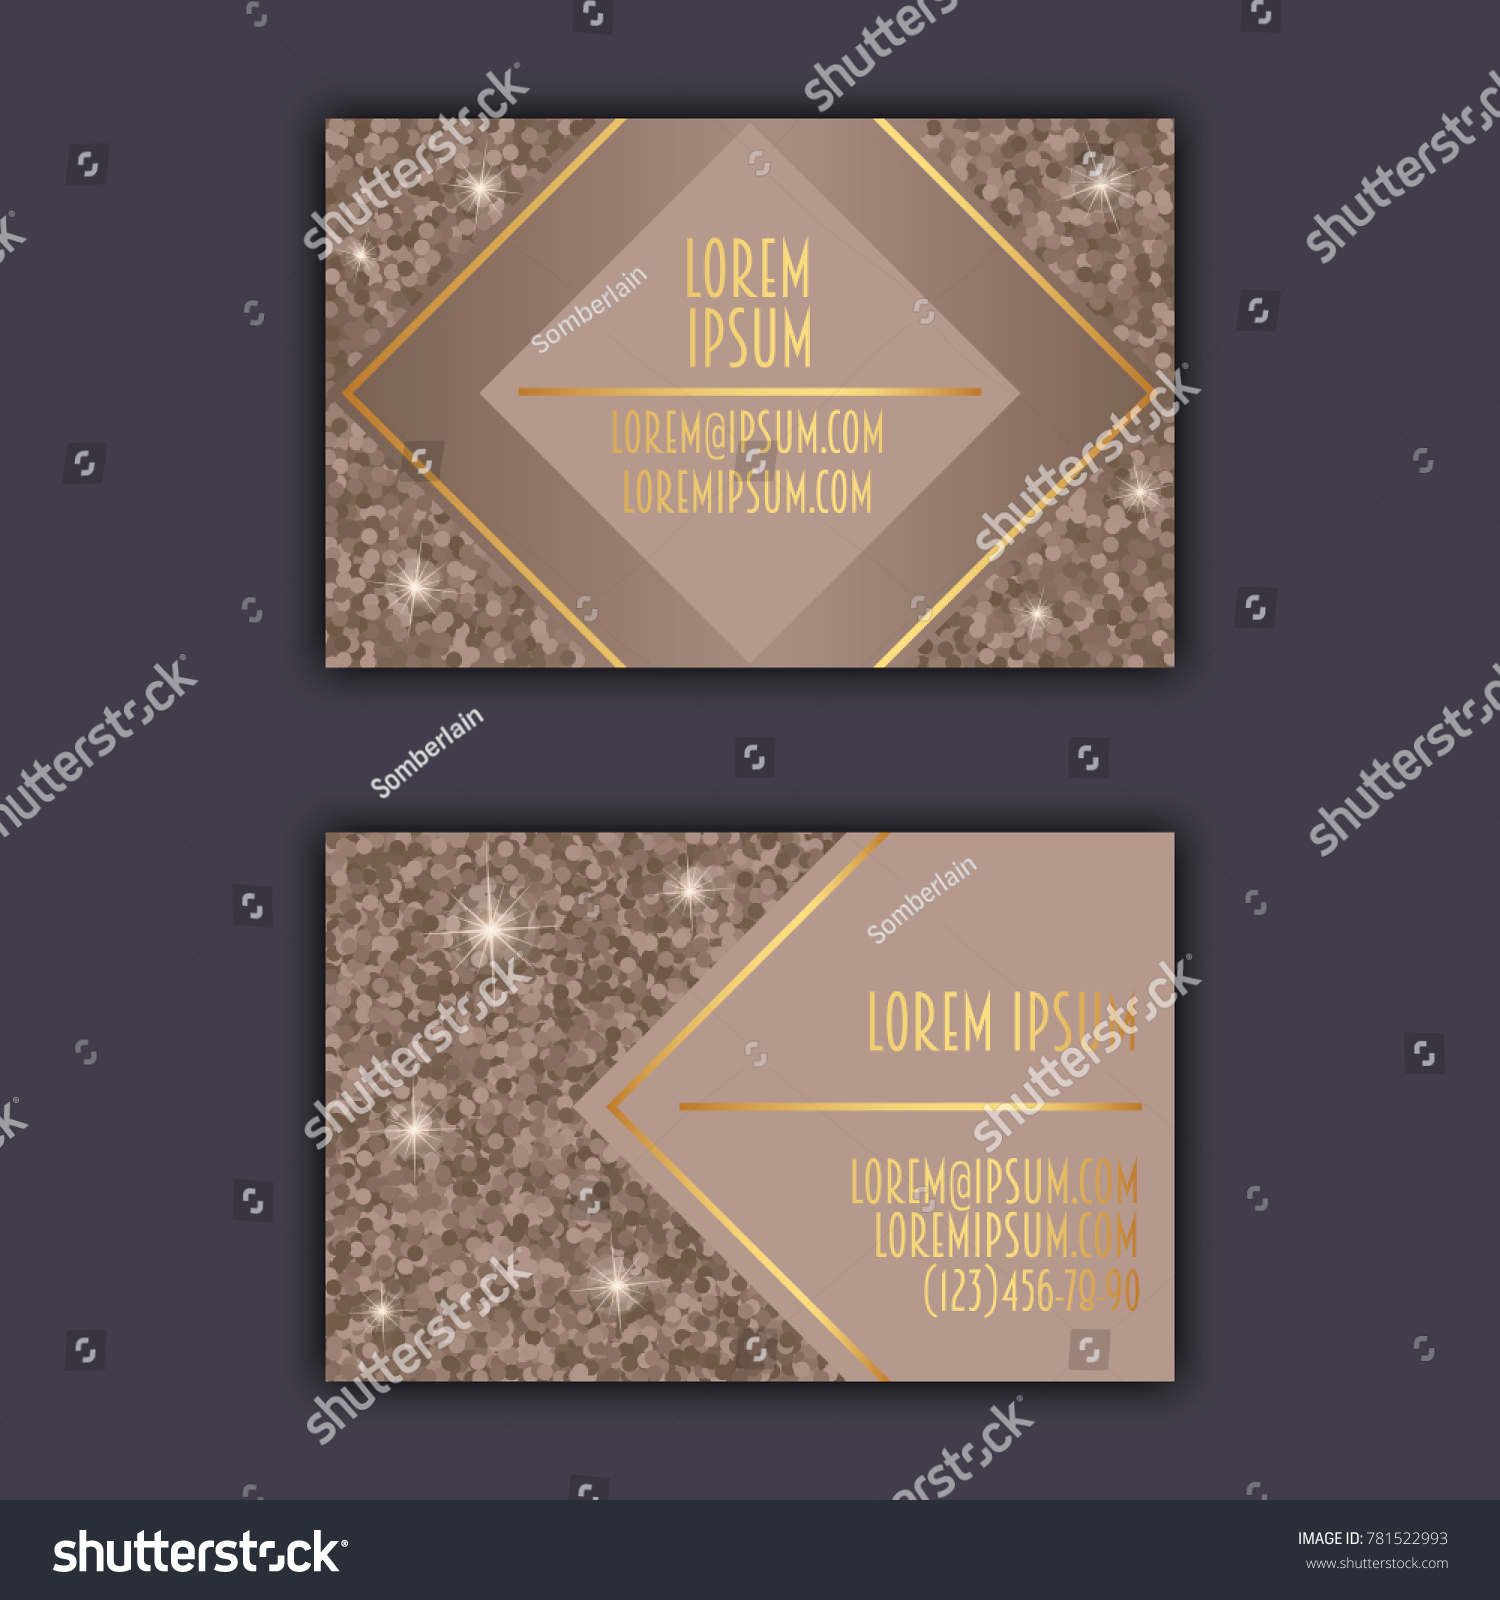 Business Card Templates Glitter Shining Background Stock Vector ...